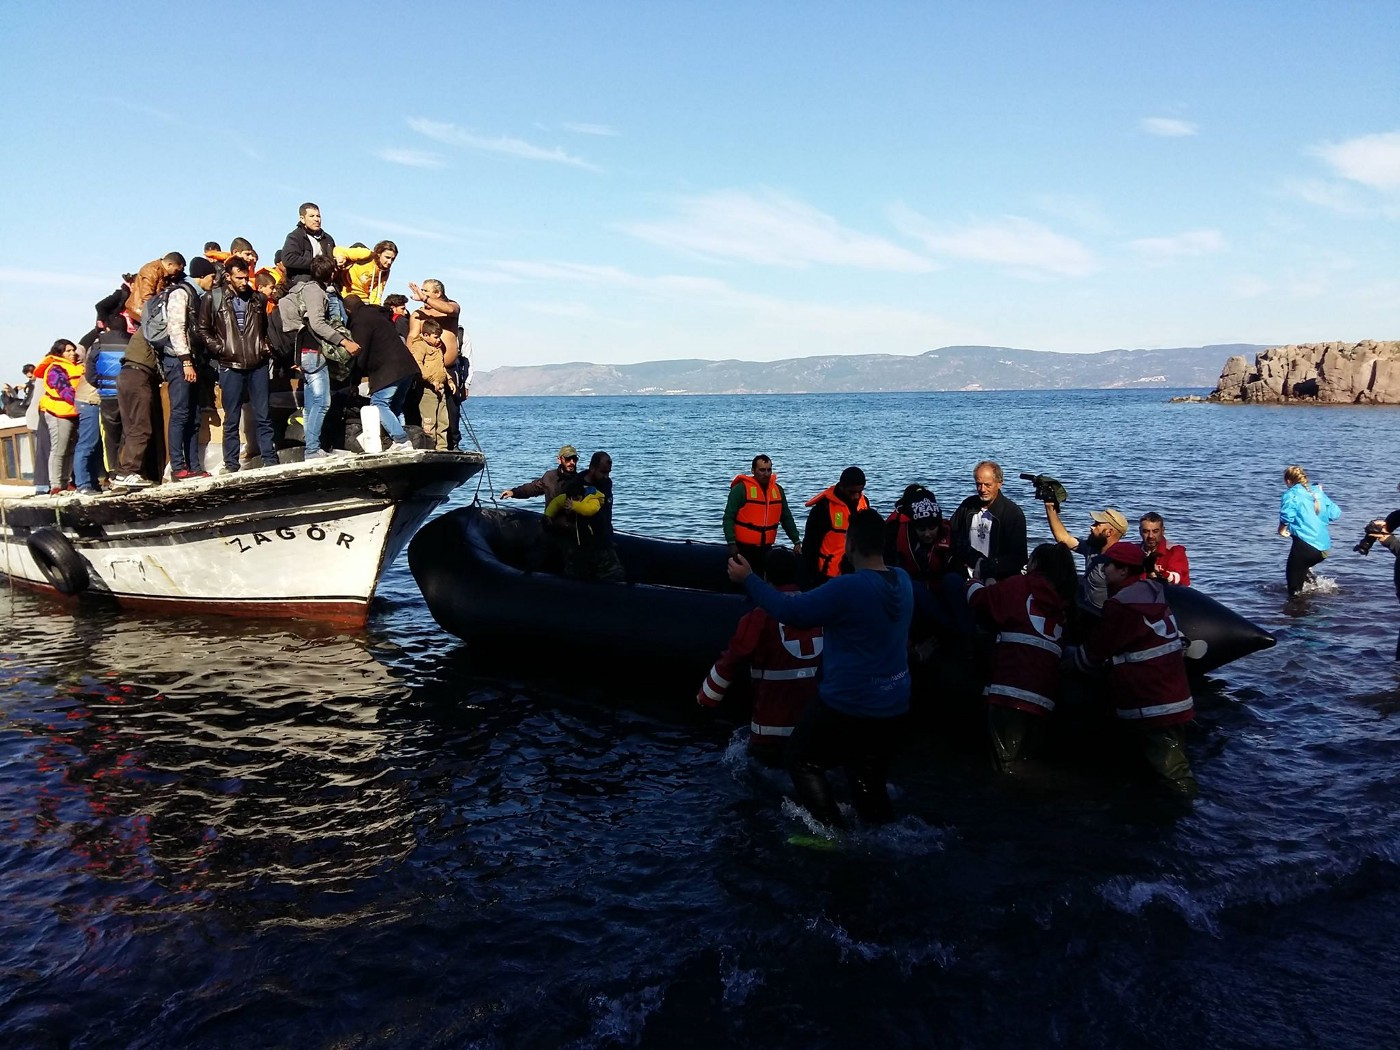 On the Aphrodite Hotel beach in 2015, a boat filled with refugees comes ashore from as volunteers come to help them.